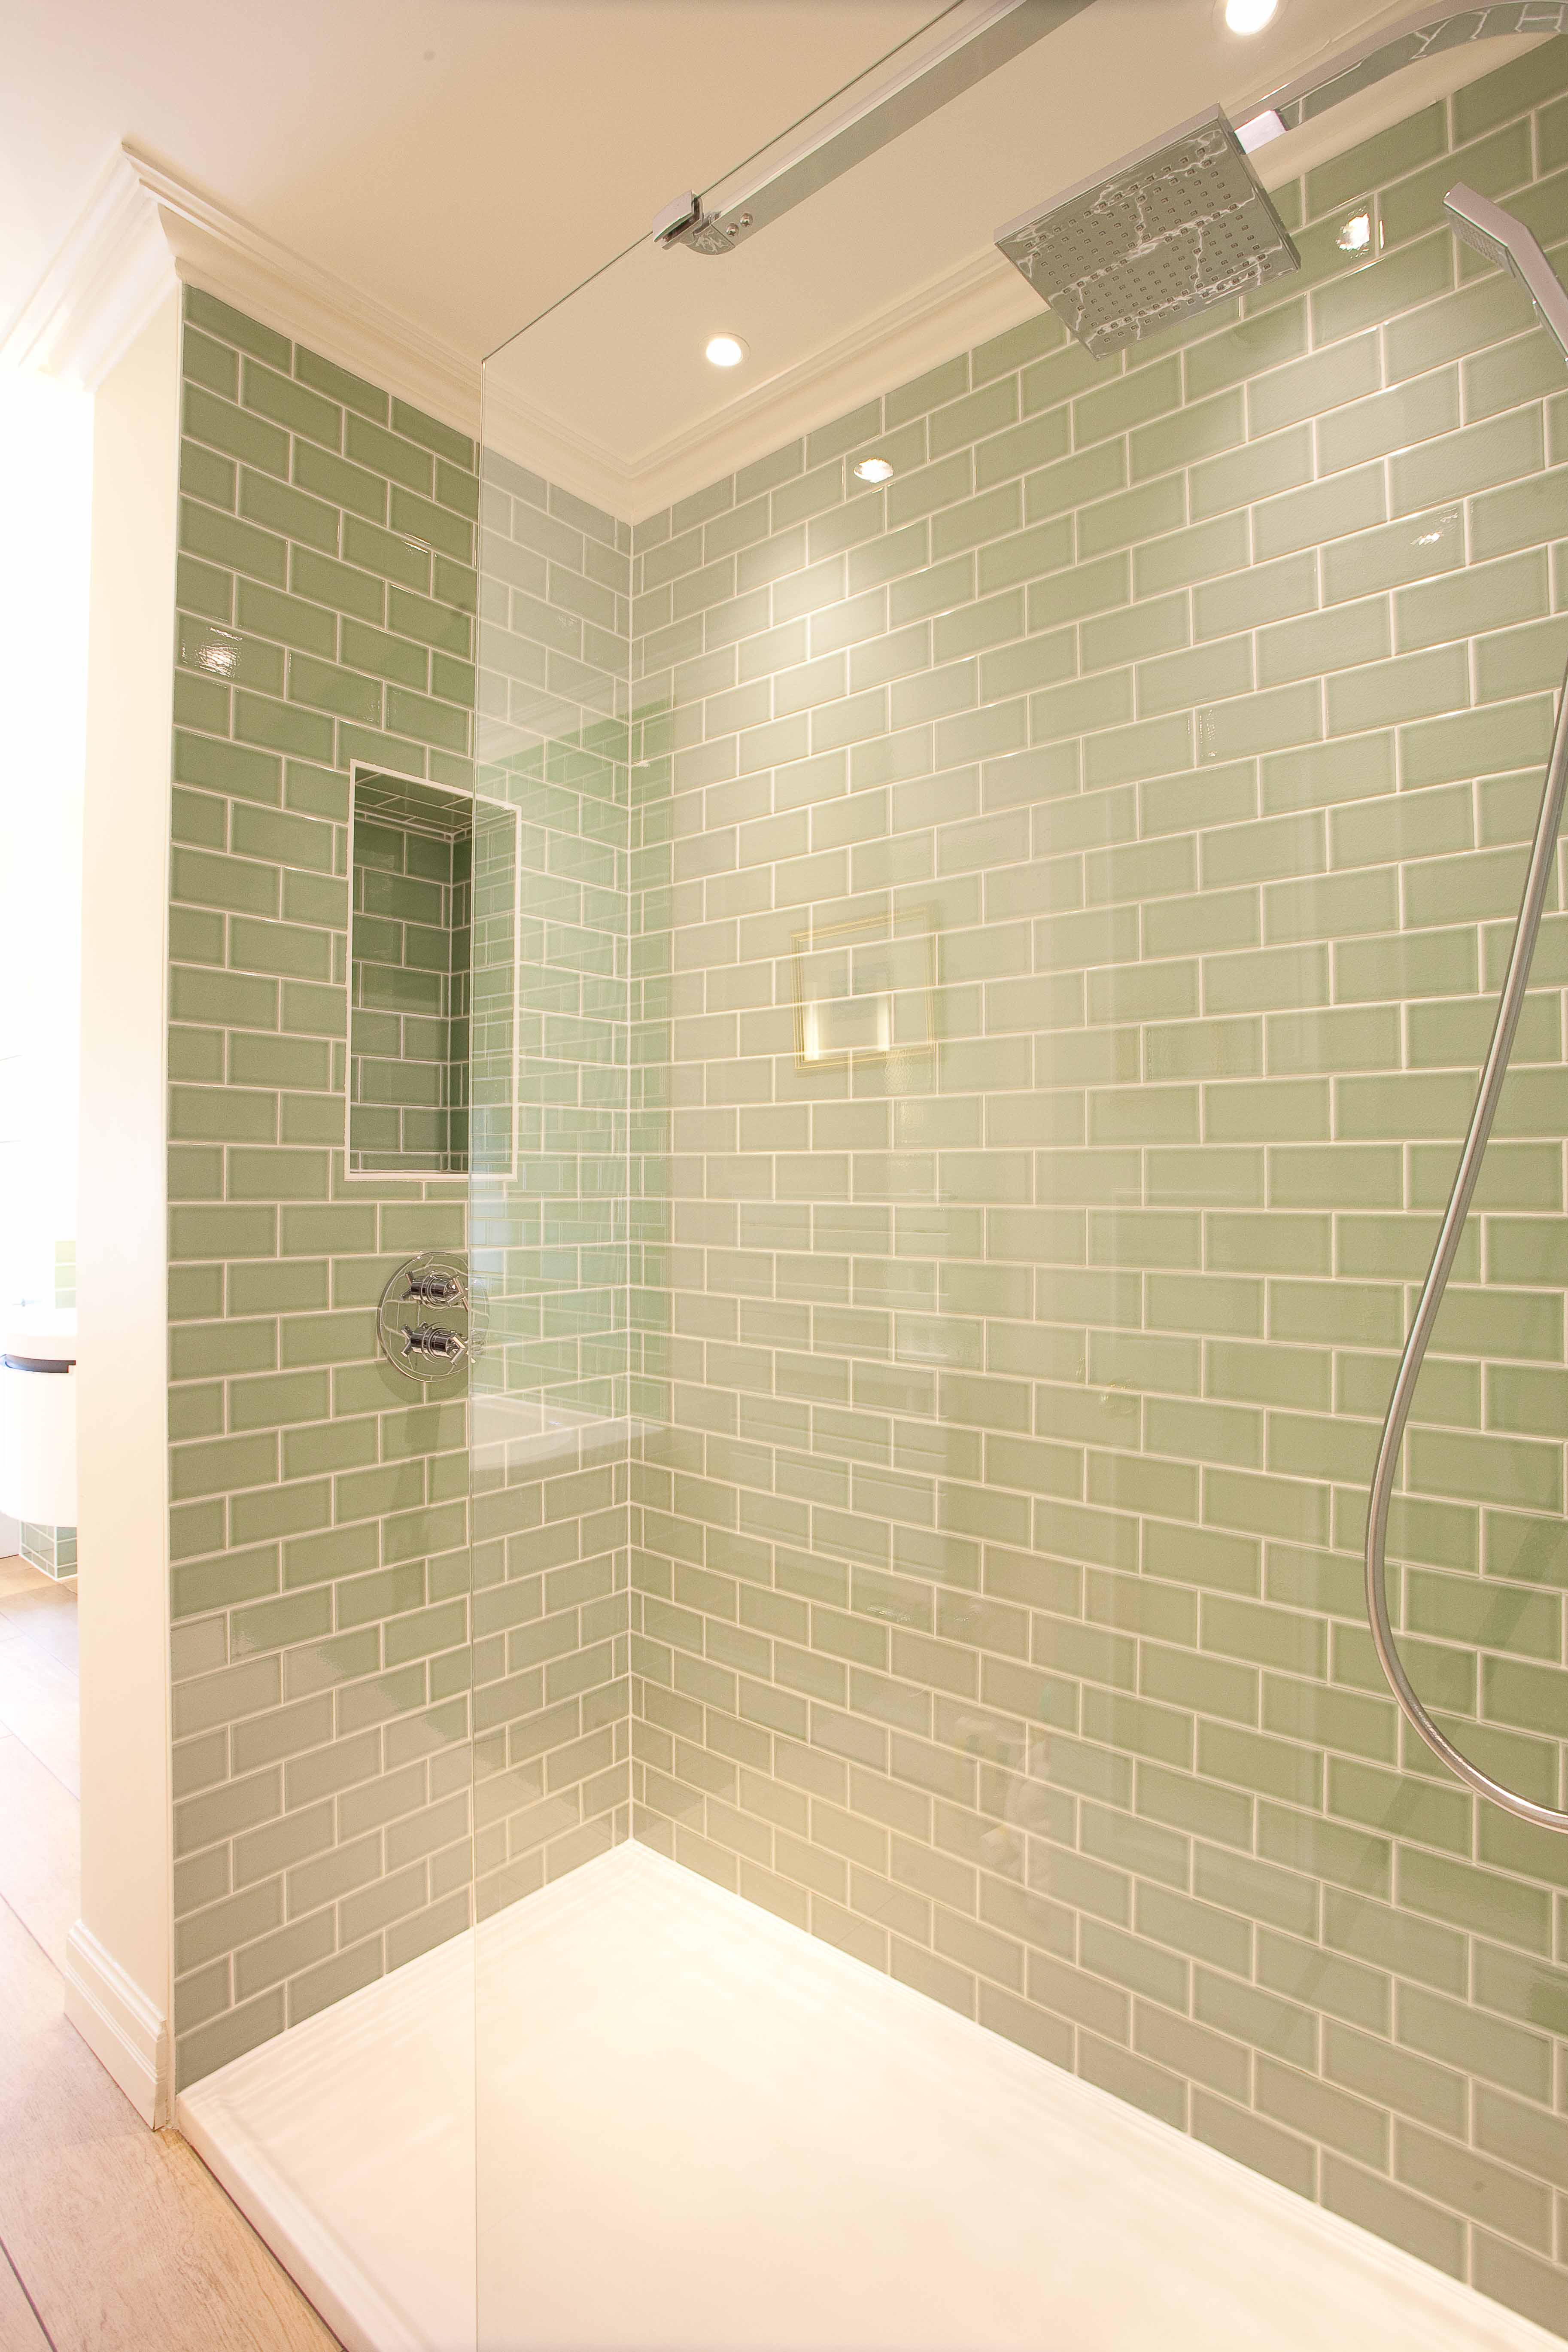 Green subway tiled shower with bespoke glass